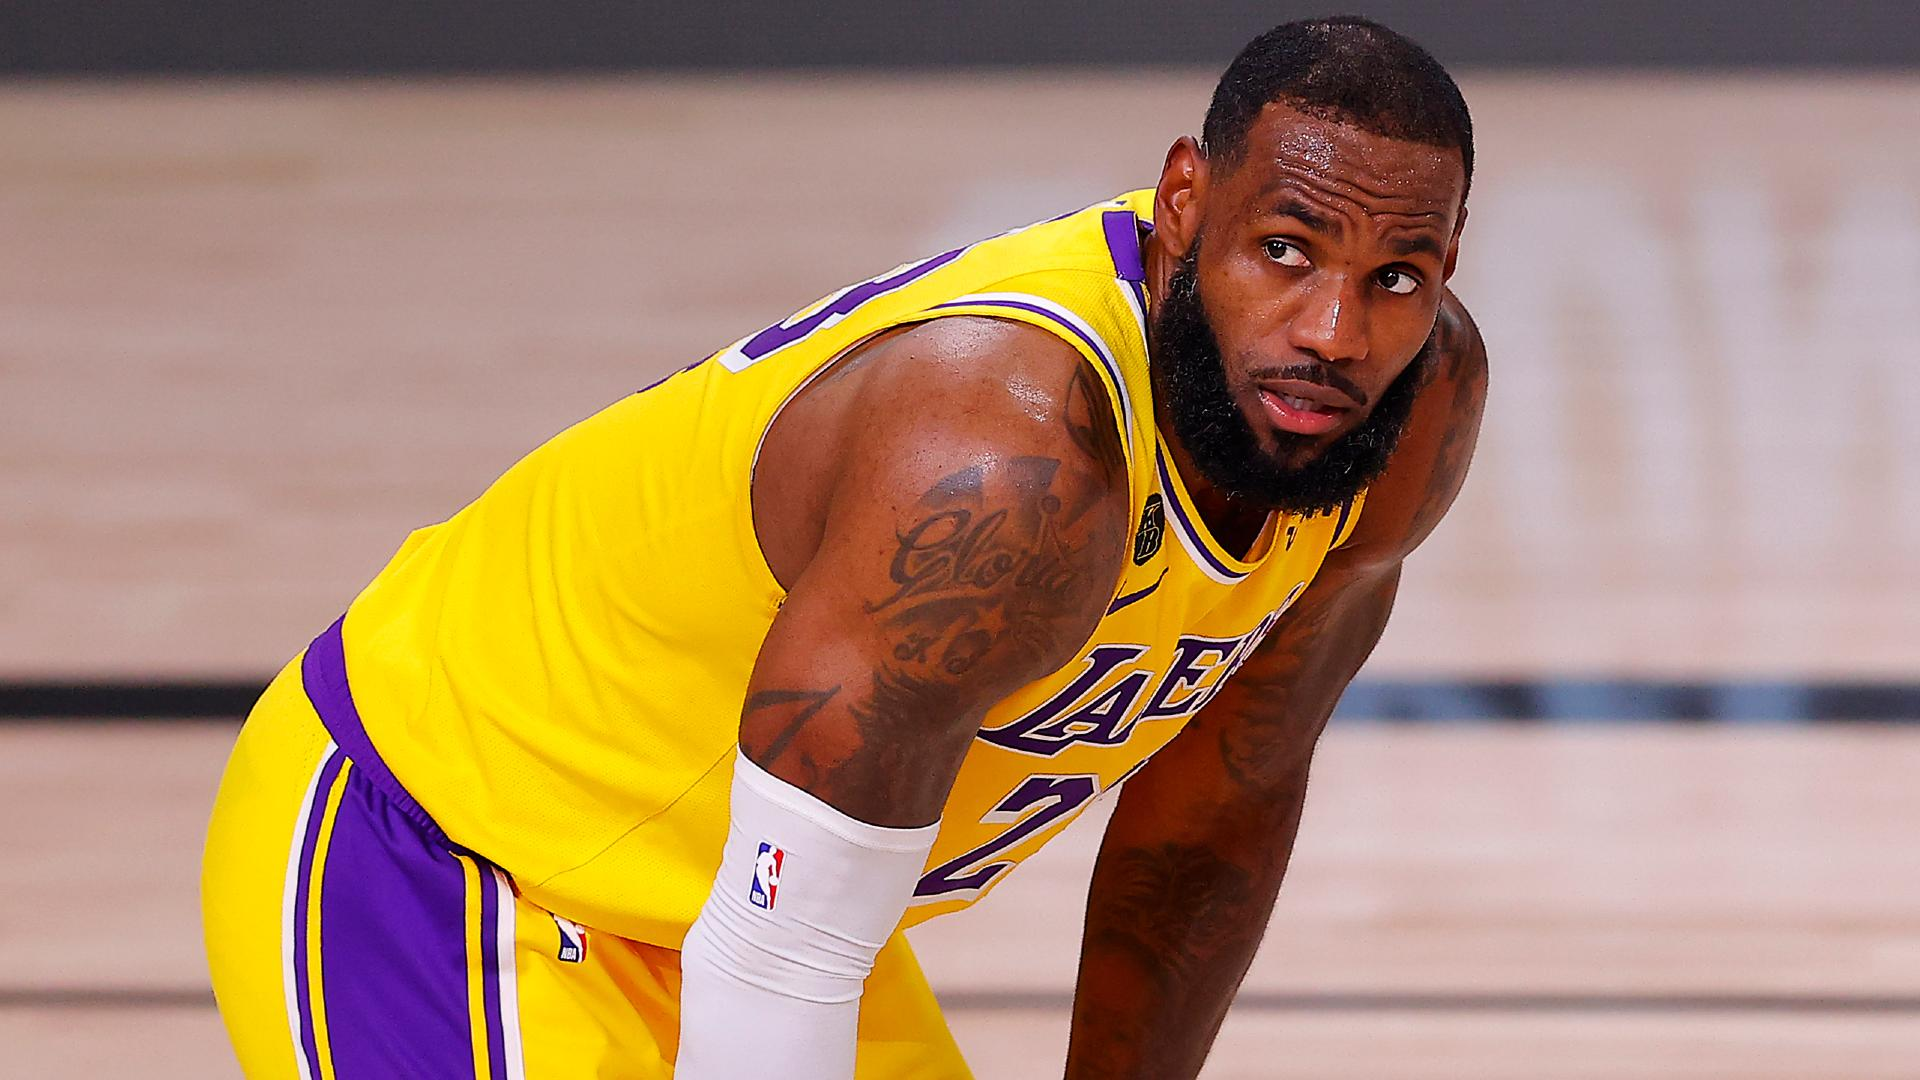 LeBron rues missed opportunities as Lakers fall to Trail Blazers